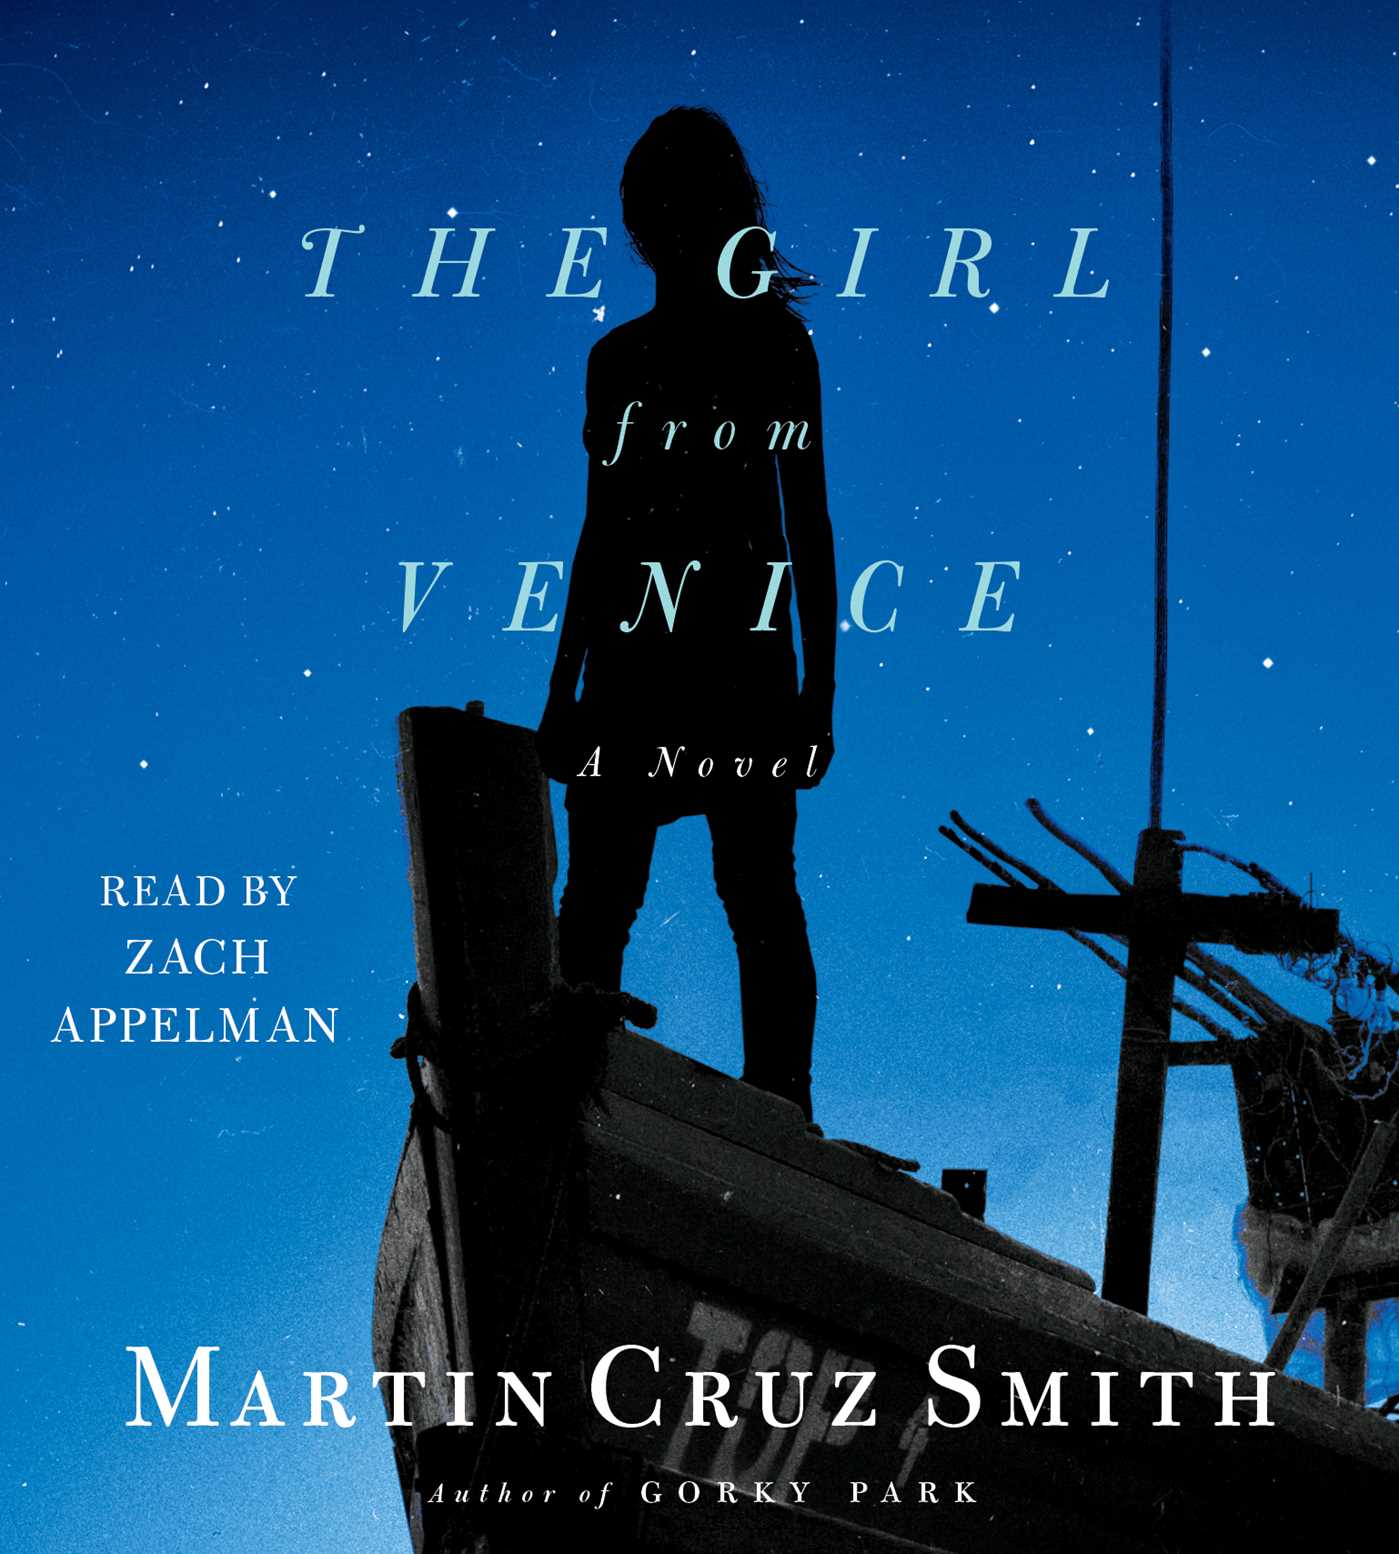 The girl from venice 9781508221869 hr